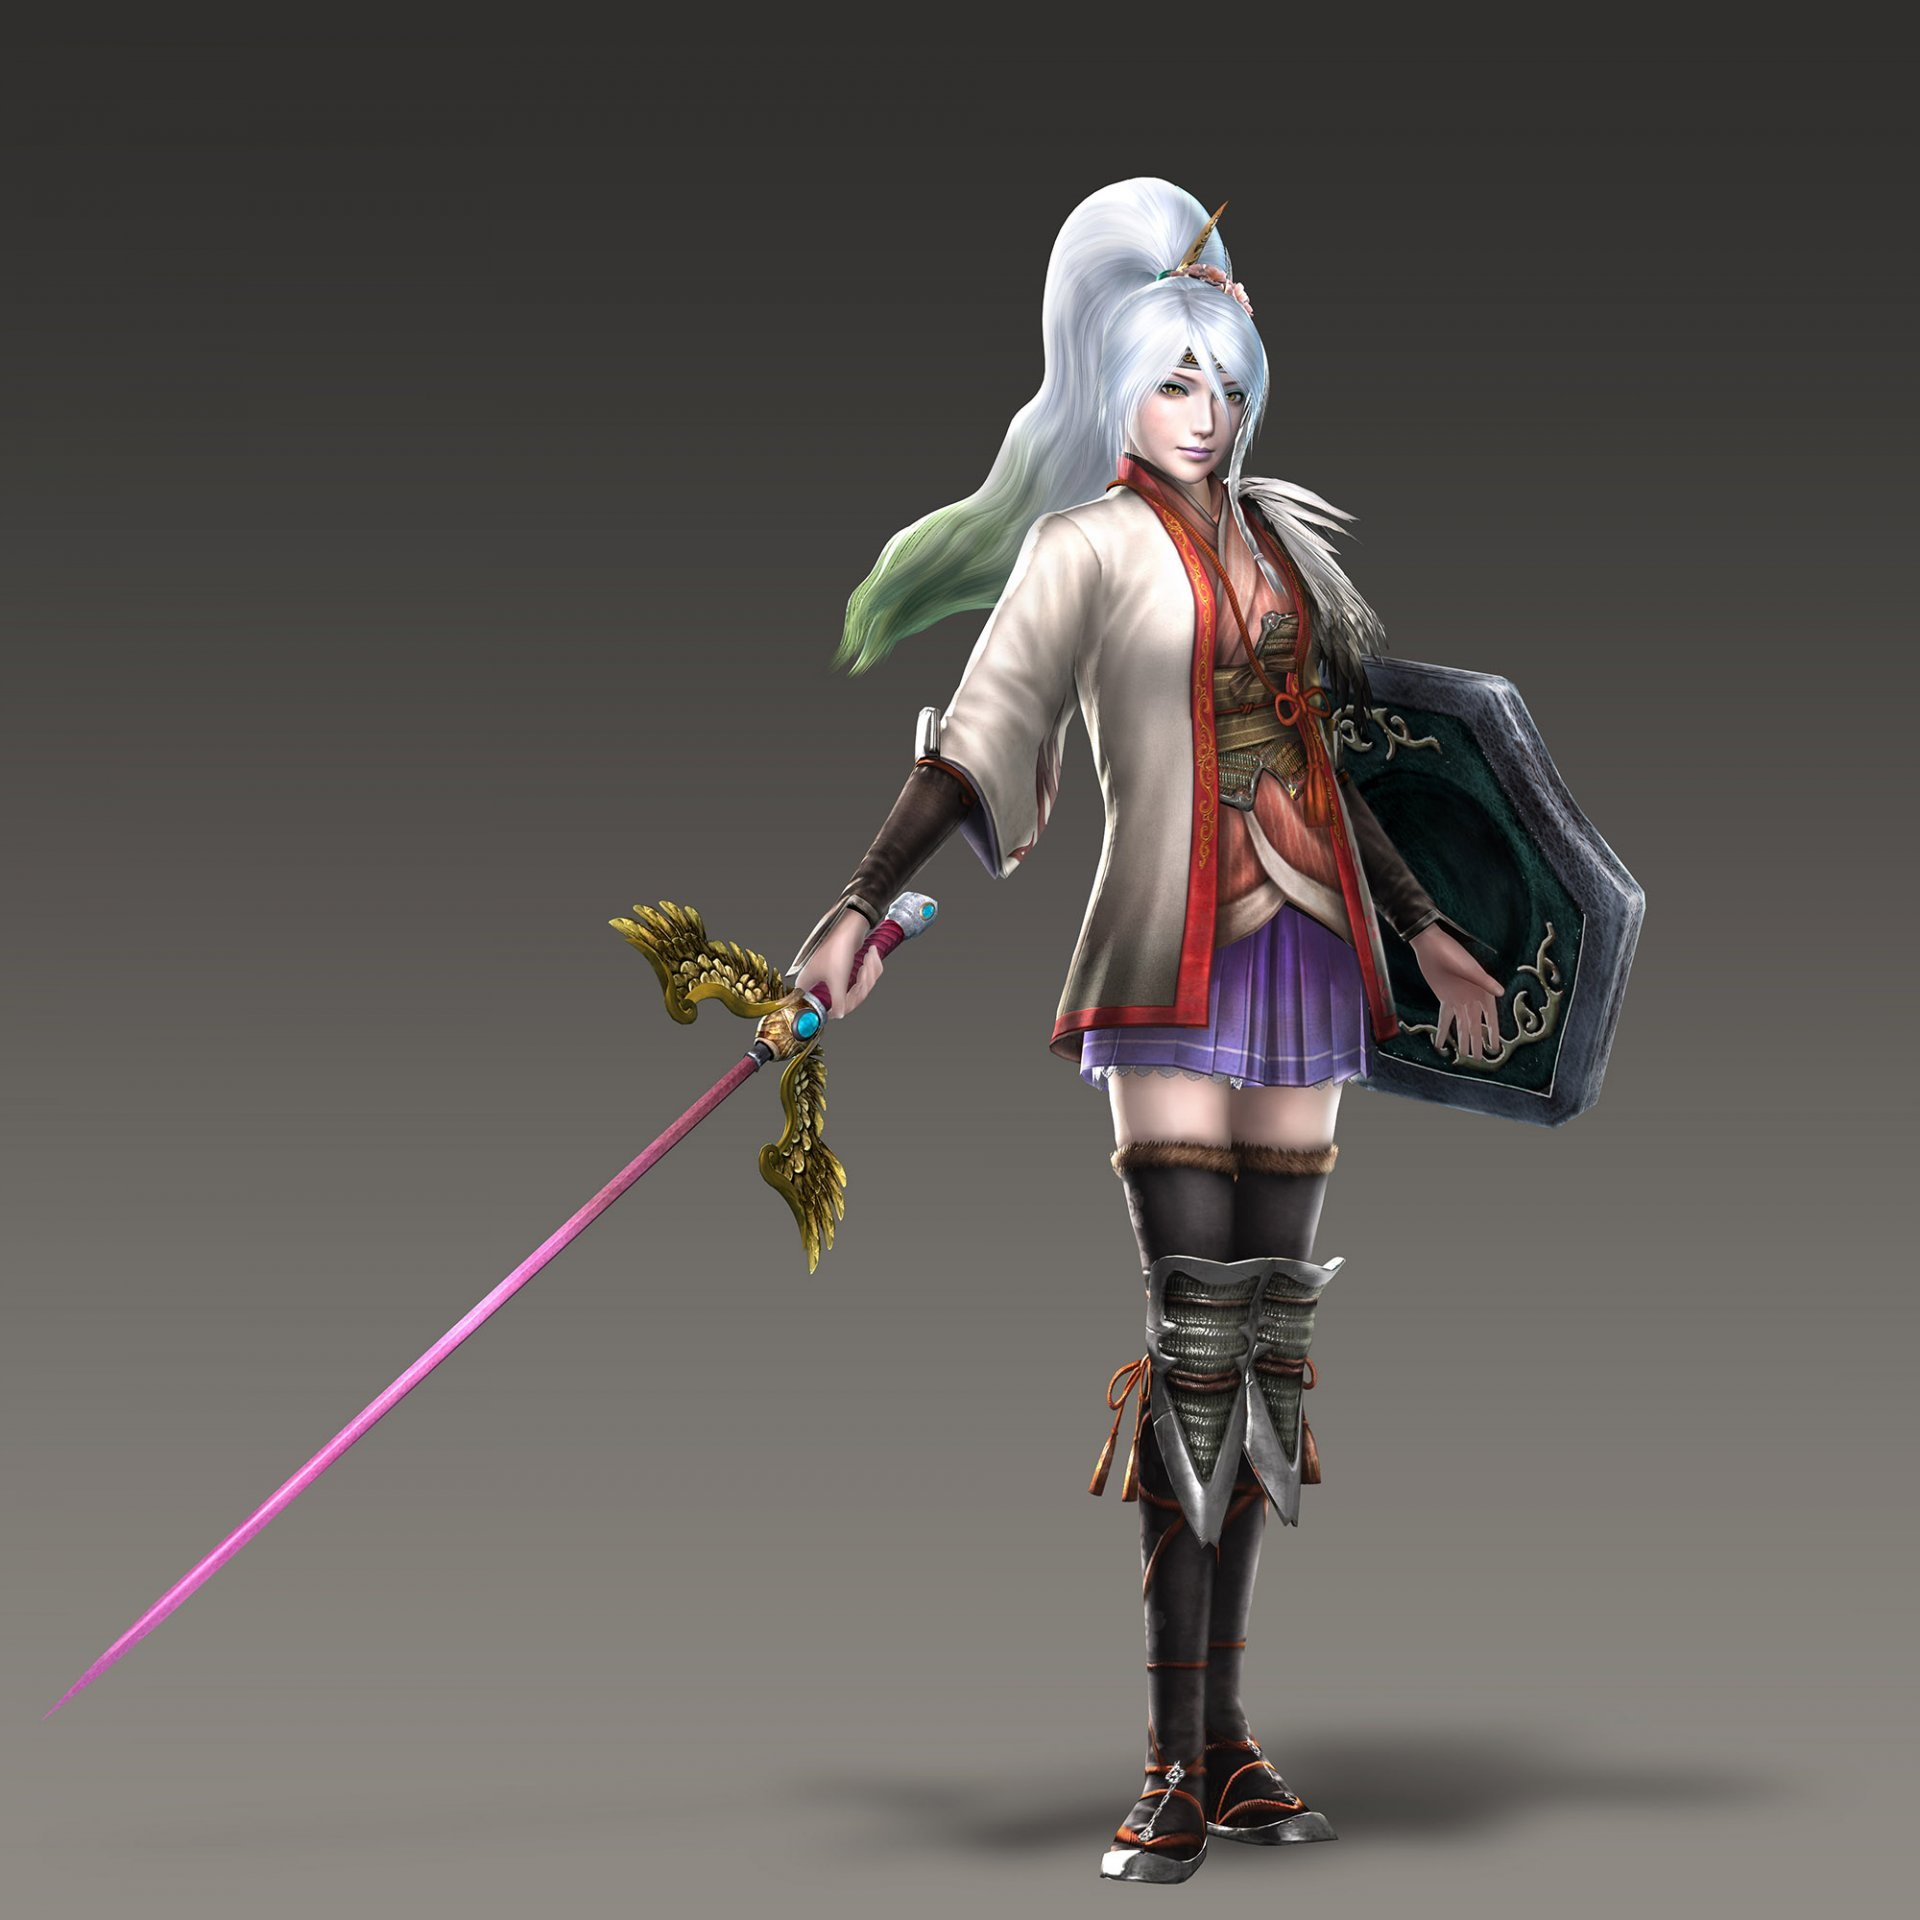 Warriors Orochi 3 Ultimate Dlc: Warriors Orochi 3 Ultimate Wallpaper